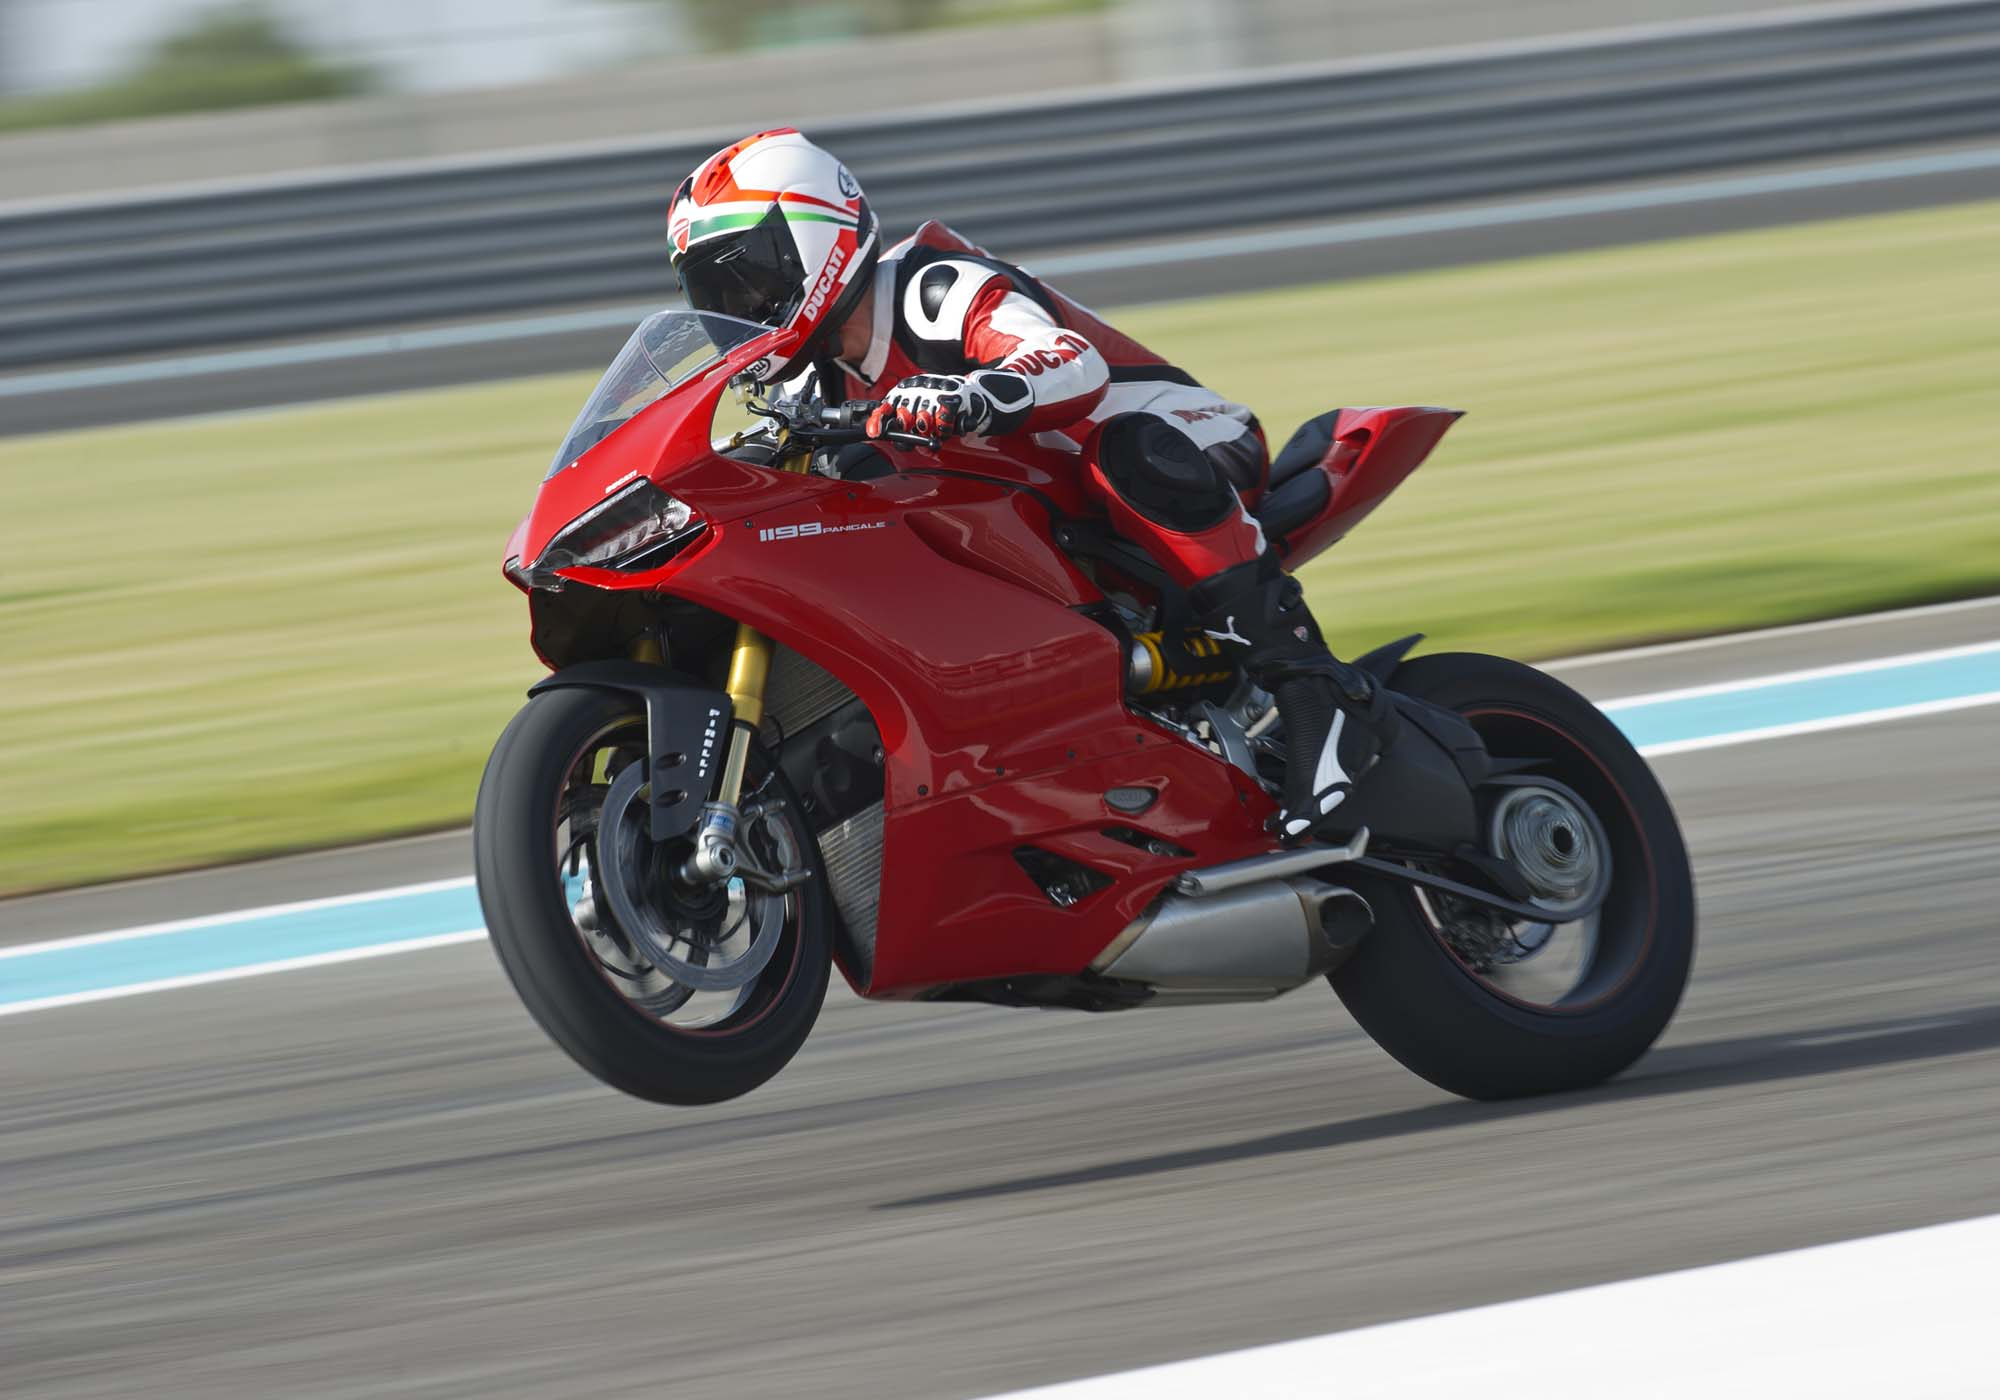 yas marina circuit troy bayliss ducati 1199 panigale s asphalt rubber. Black Bedroom Furniture Sets. Home Design Ideas